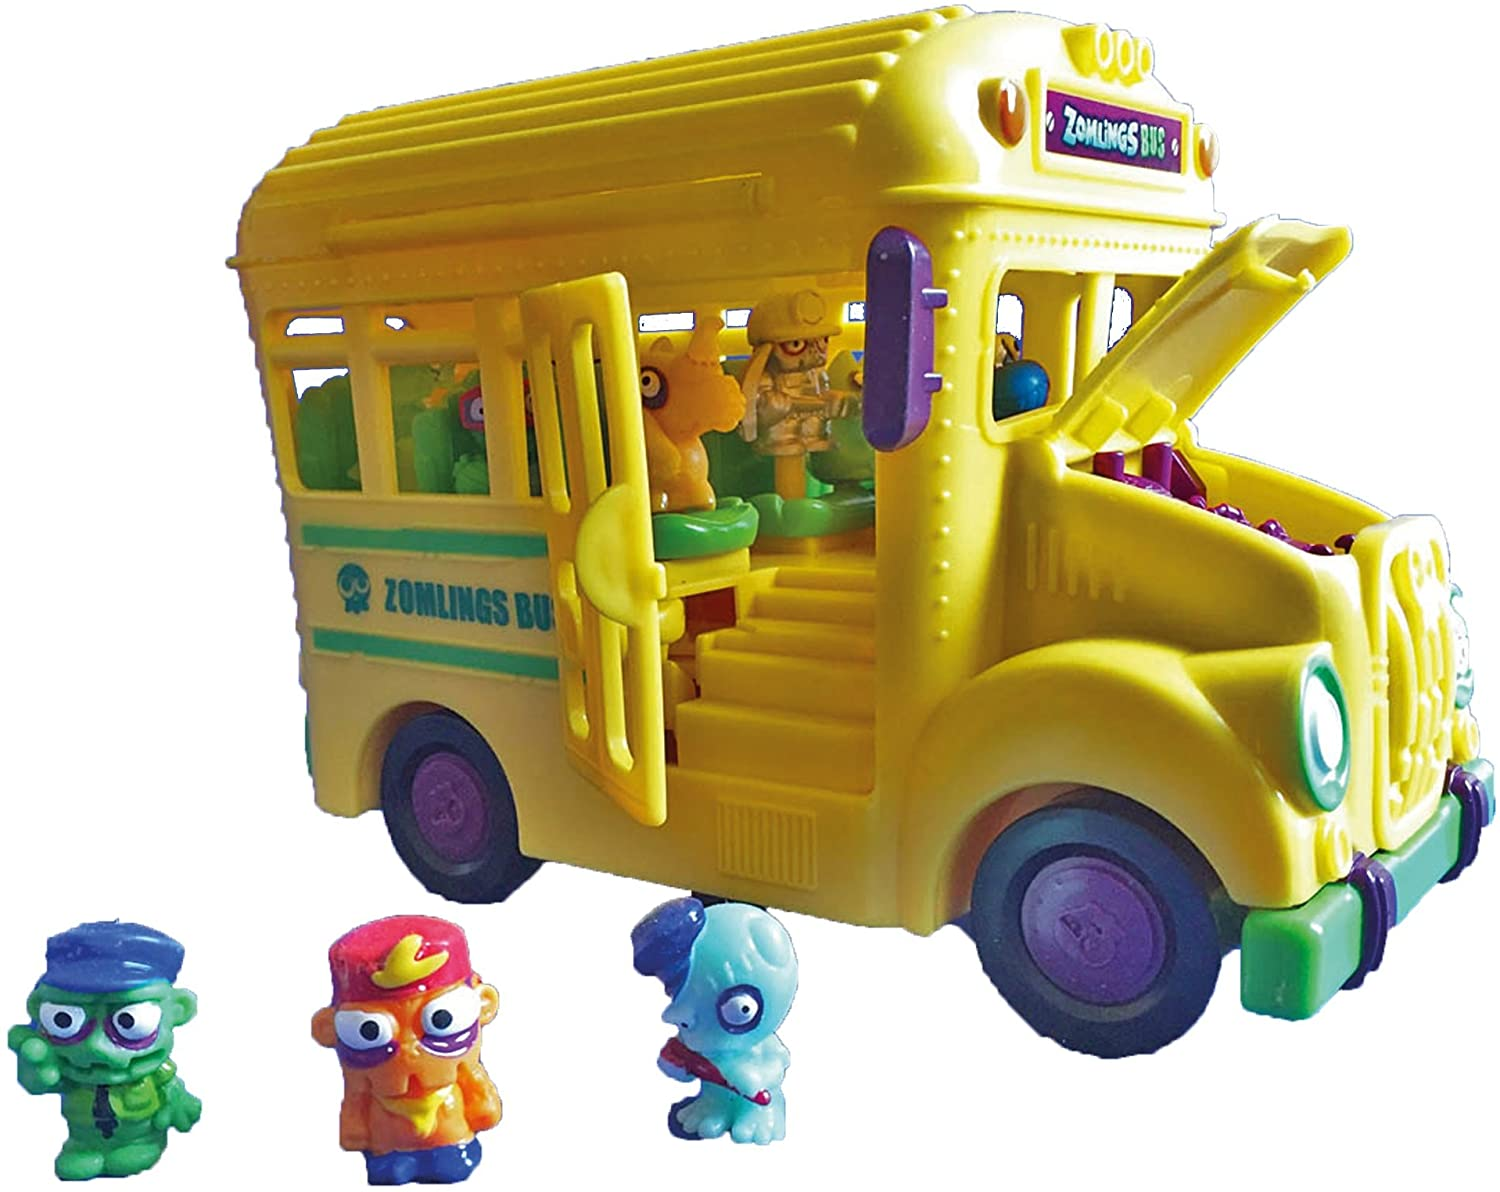 ZOMLINGS- Crazy School Bus (Magic Box INT Toys P00899): Amazon.es: Juguetes y juegos